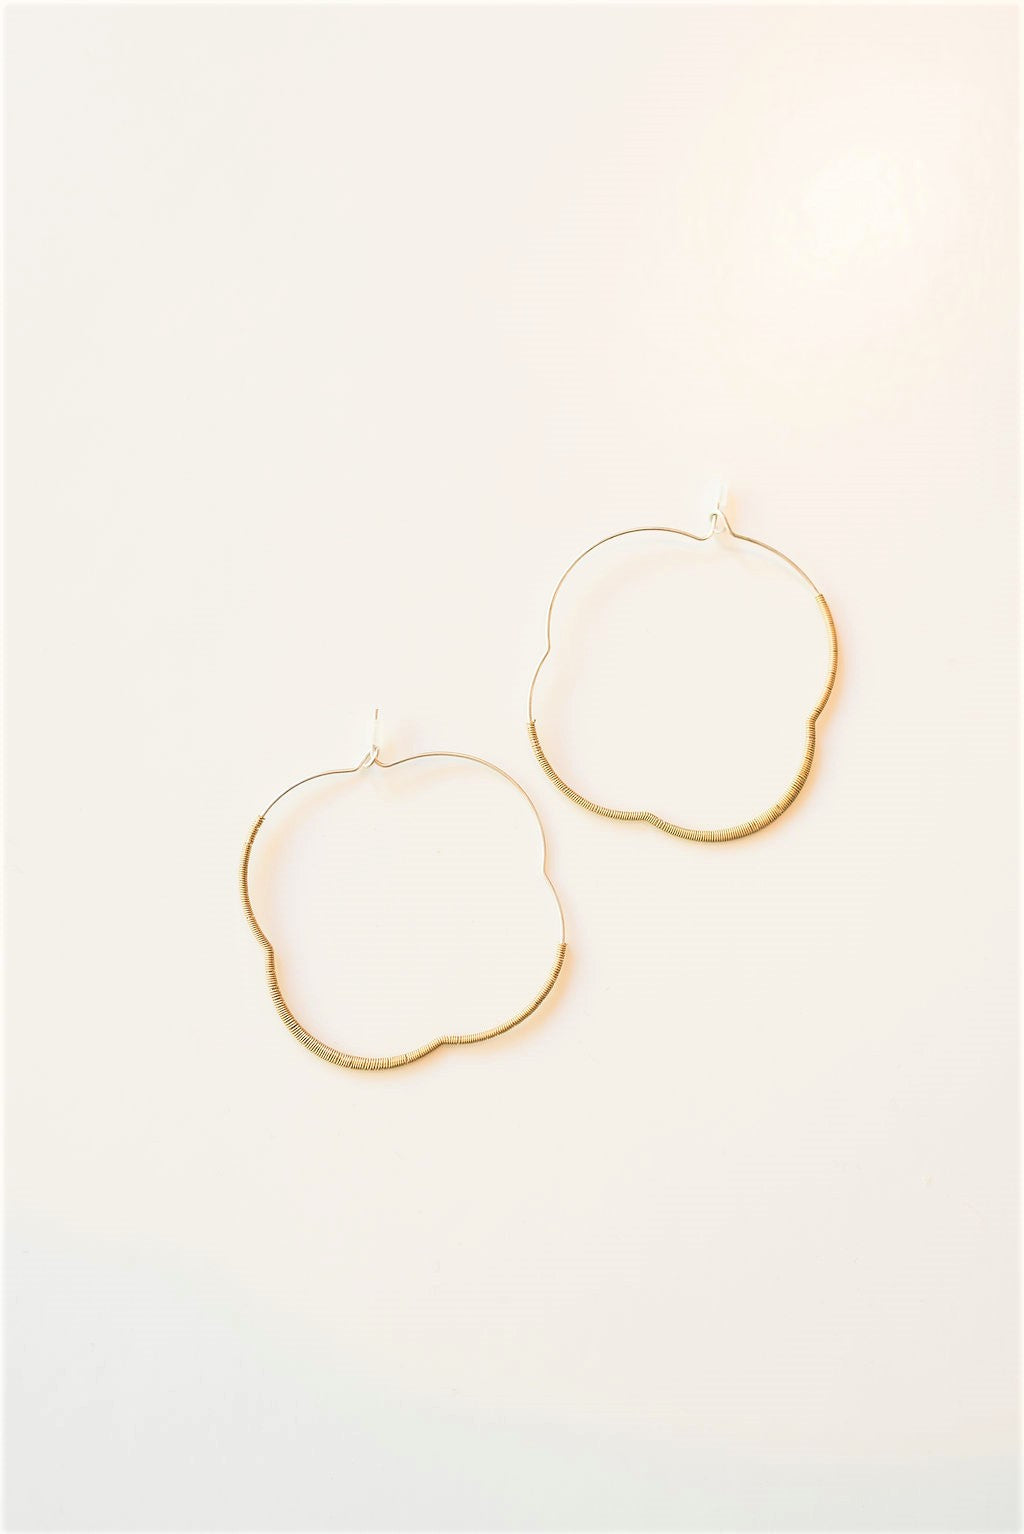 Wire Wrapped Hoop - gold/silver